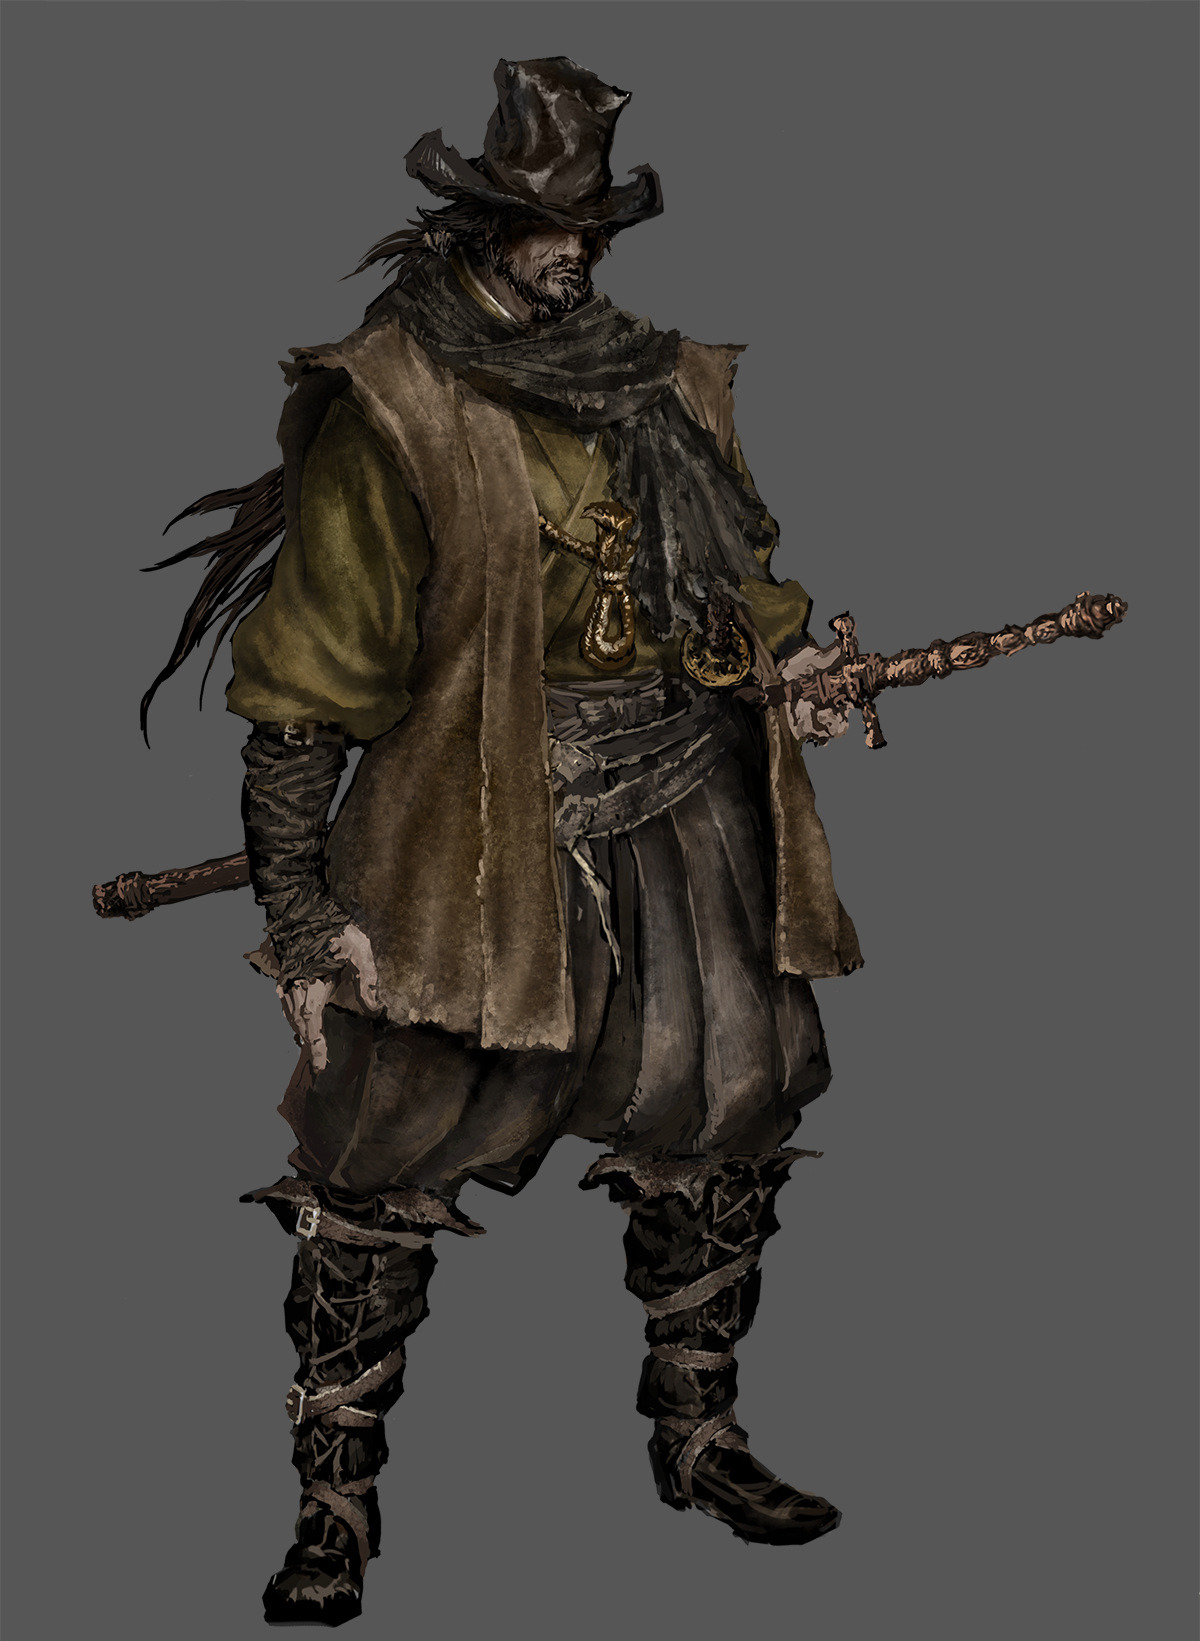 Bloodborne: The Old Hunters Concept Art